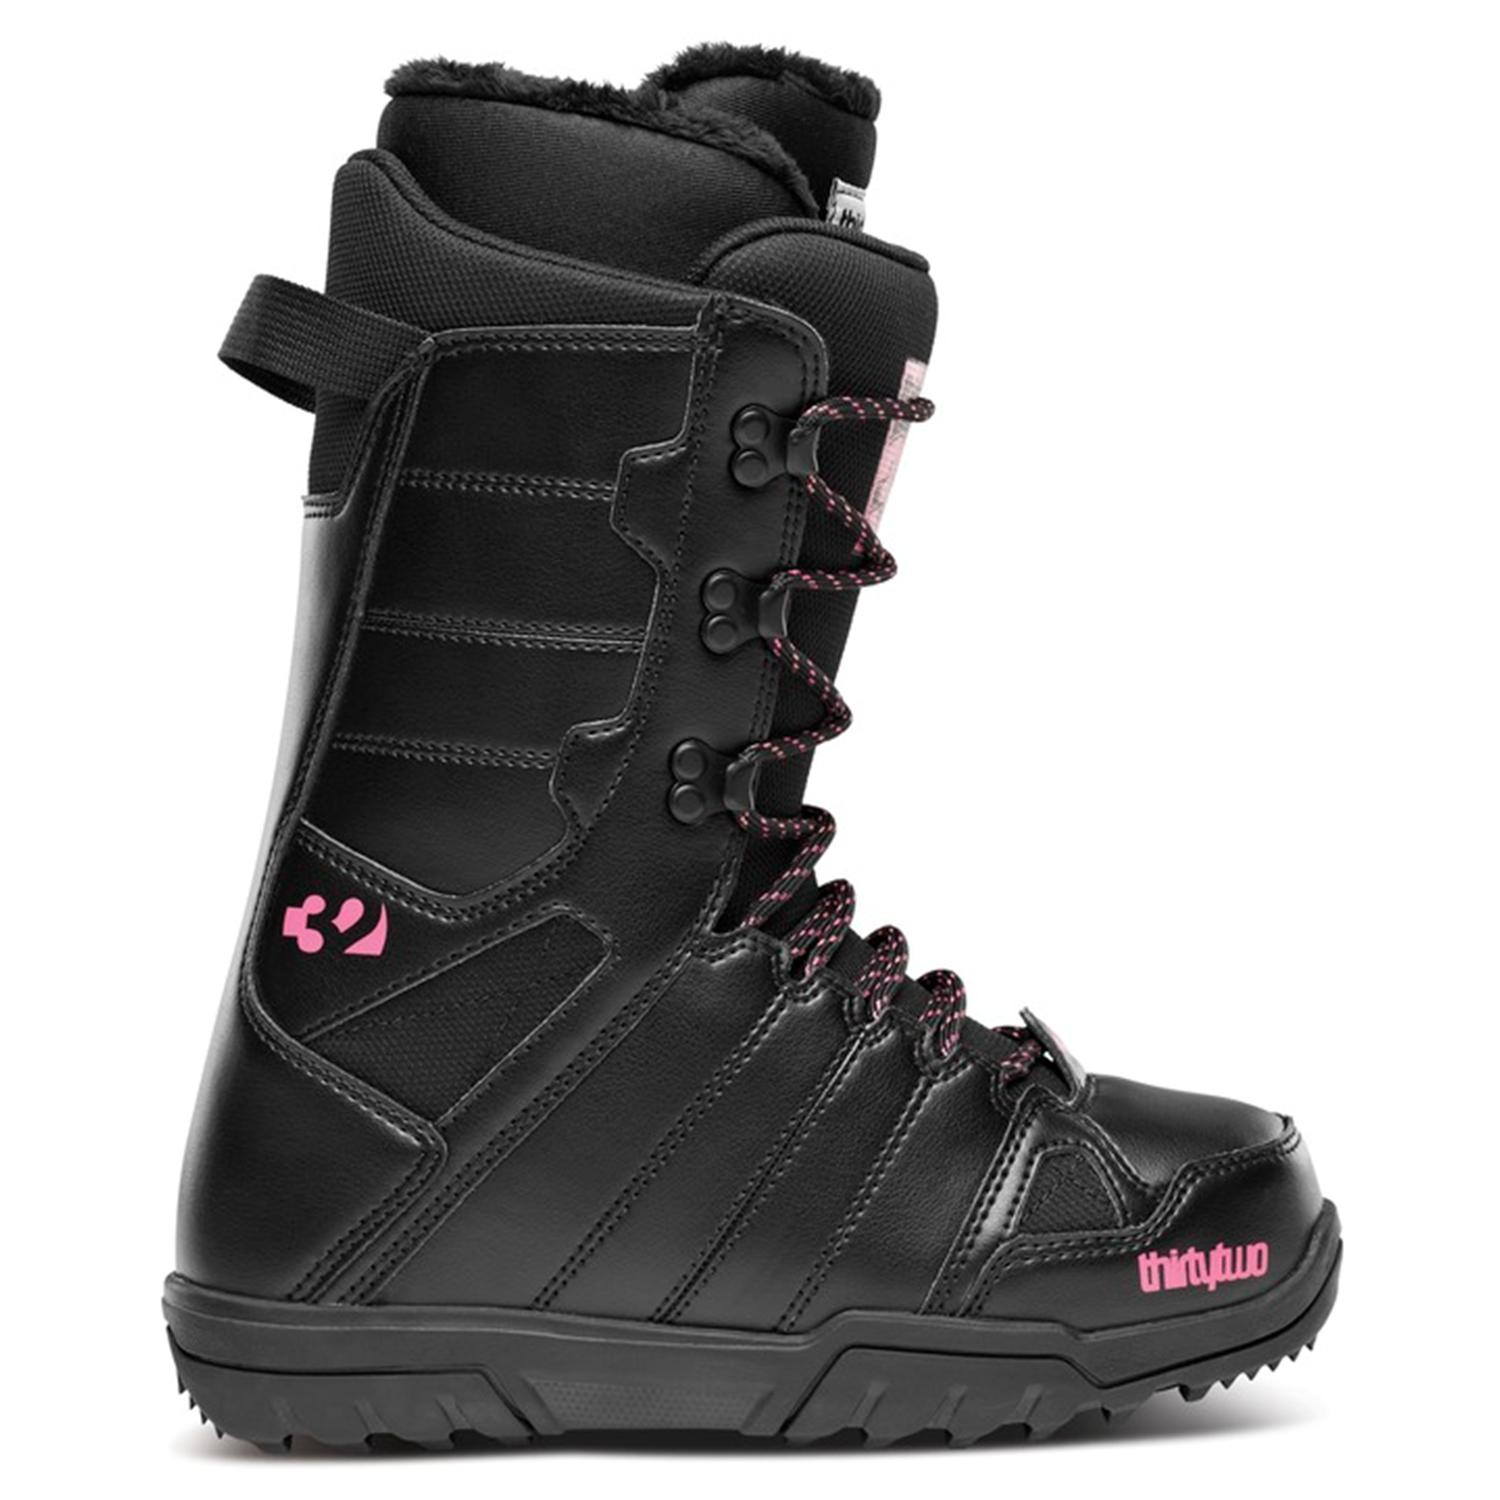 13/14 Thirtytwo Womens Exit Snowboard Boots